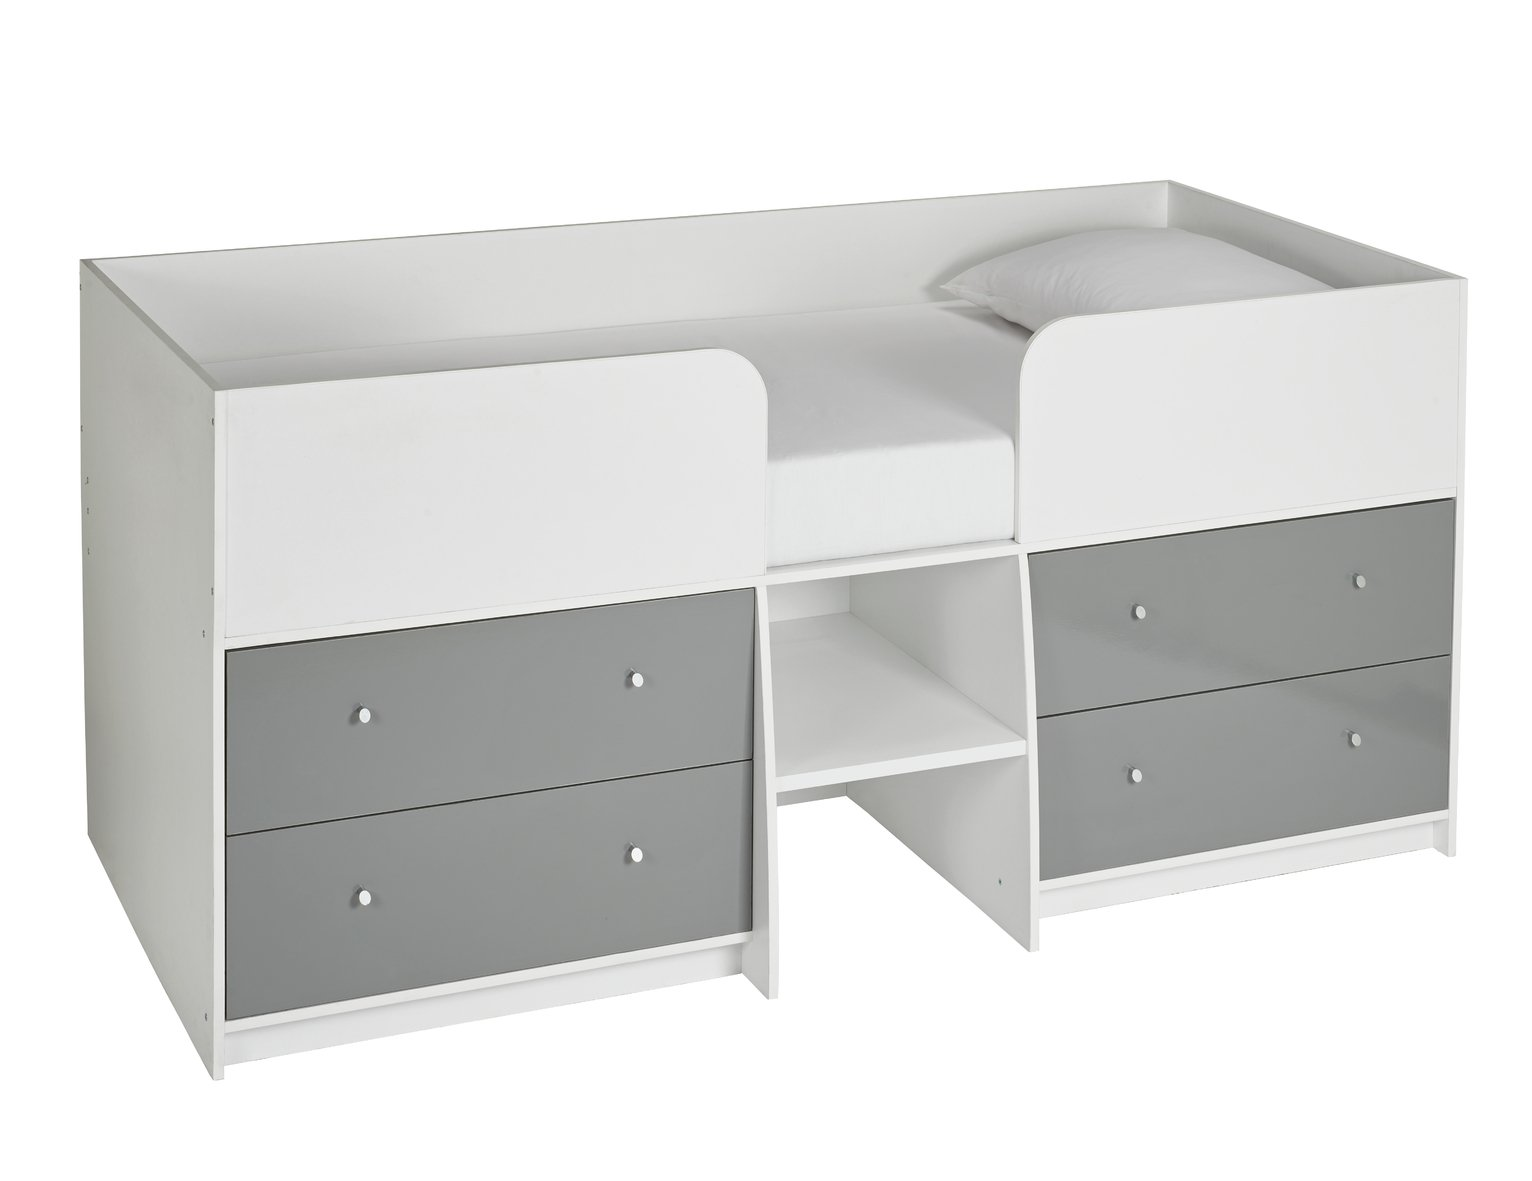 Argos Home Malibu Shorty Mid Sleeper - White & Grey Gloss